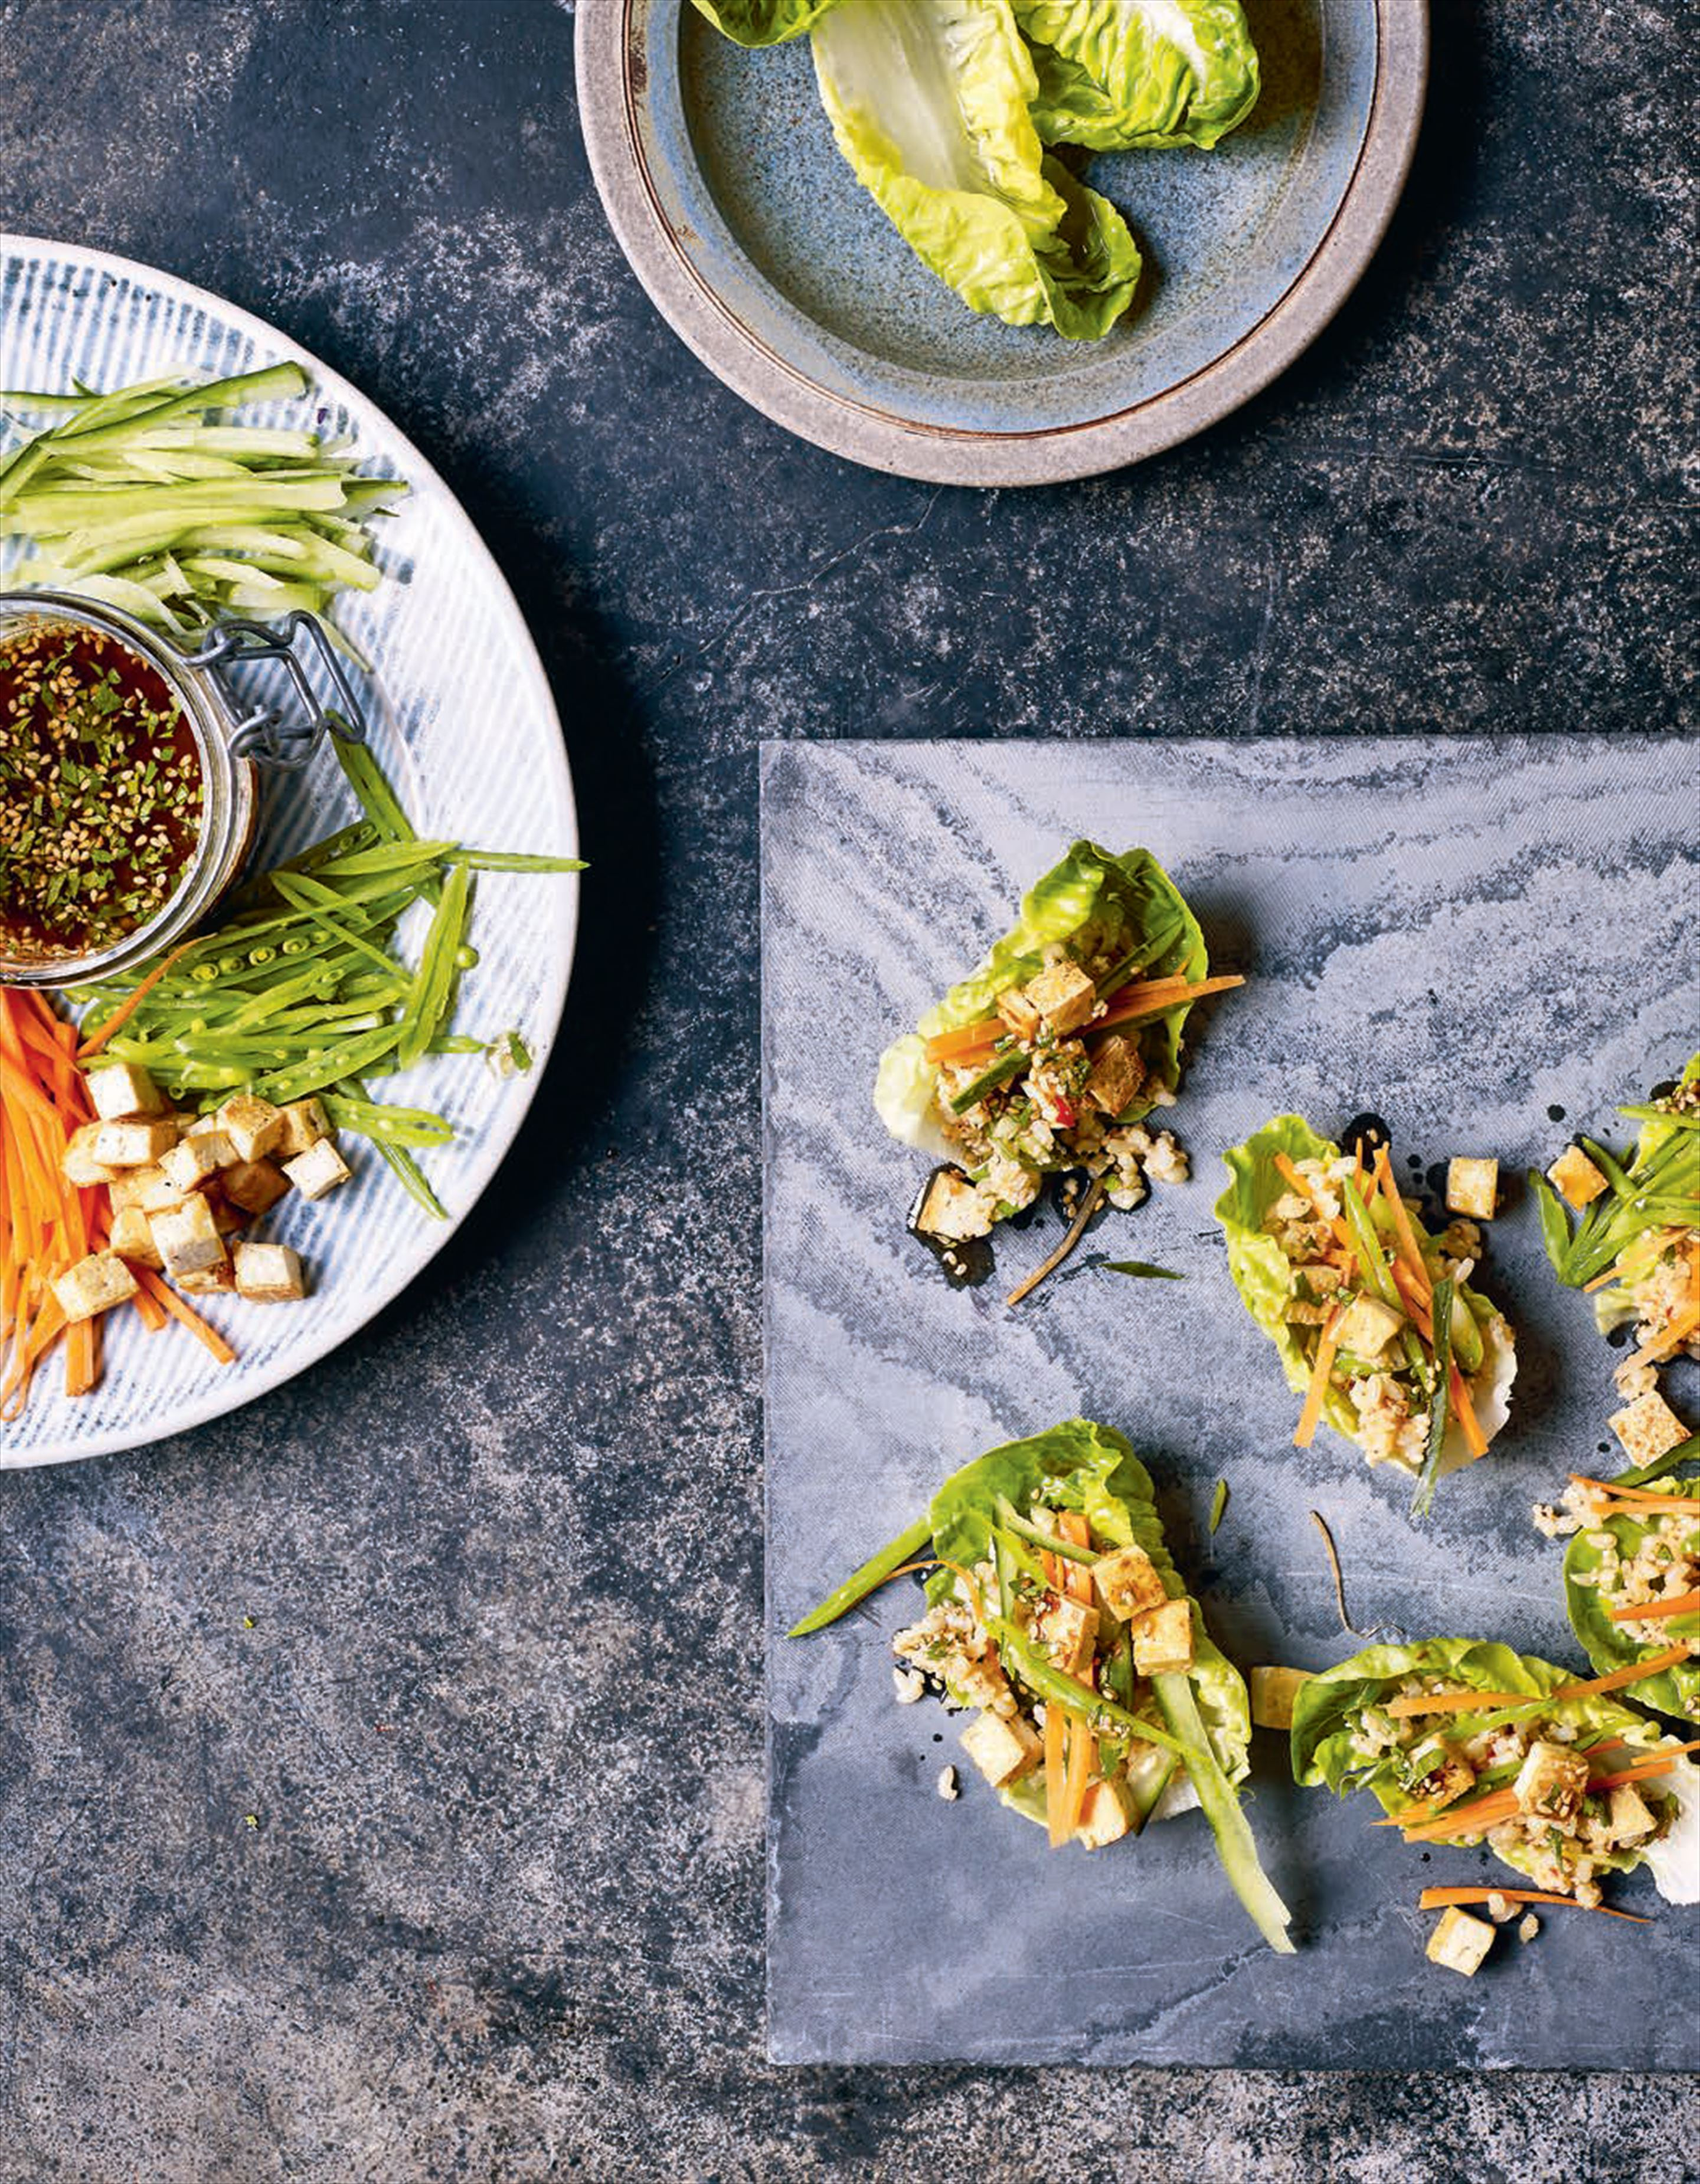 Lettuce cups with sticky brown rice and vegetable crudités